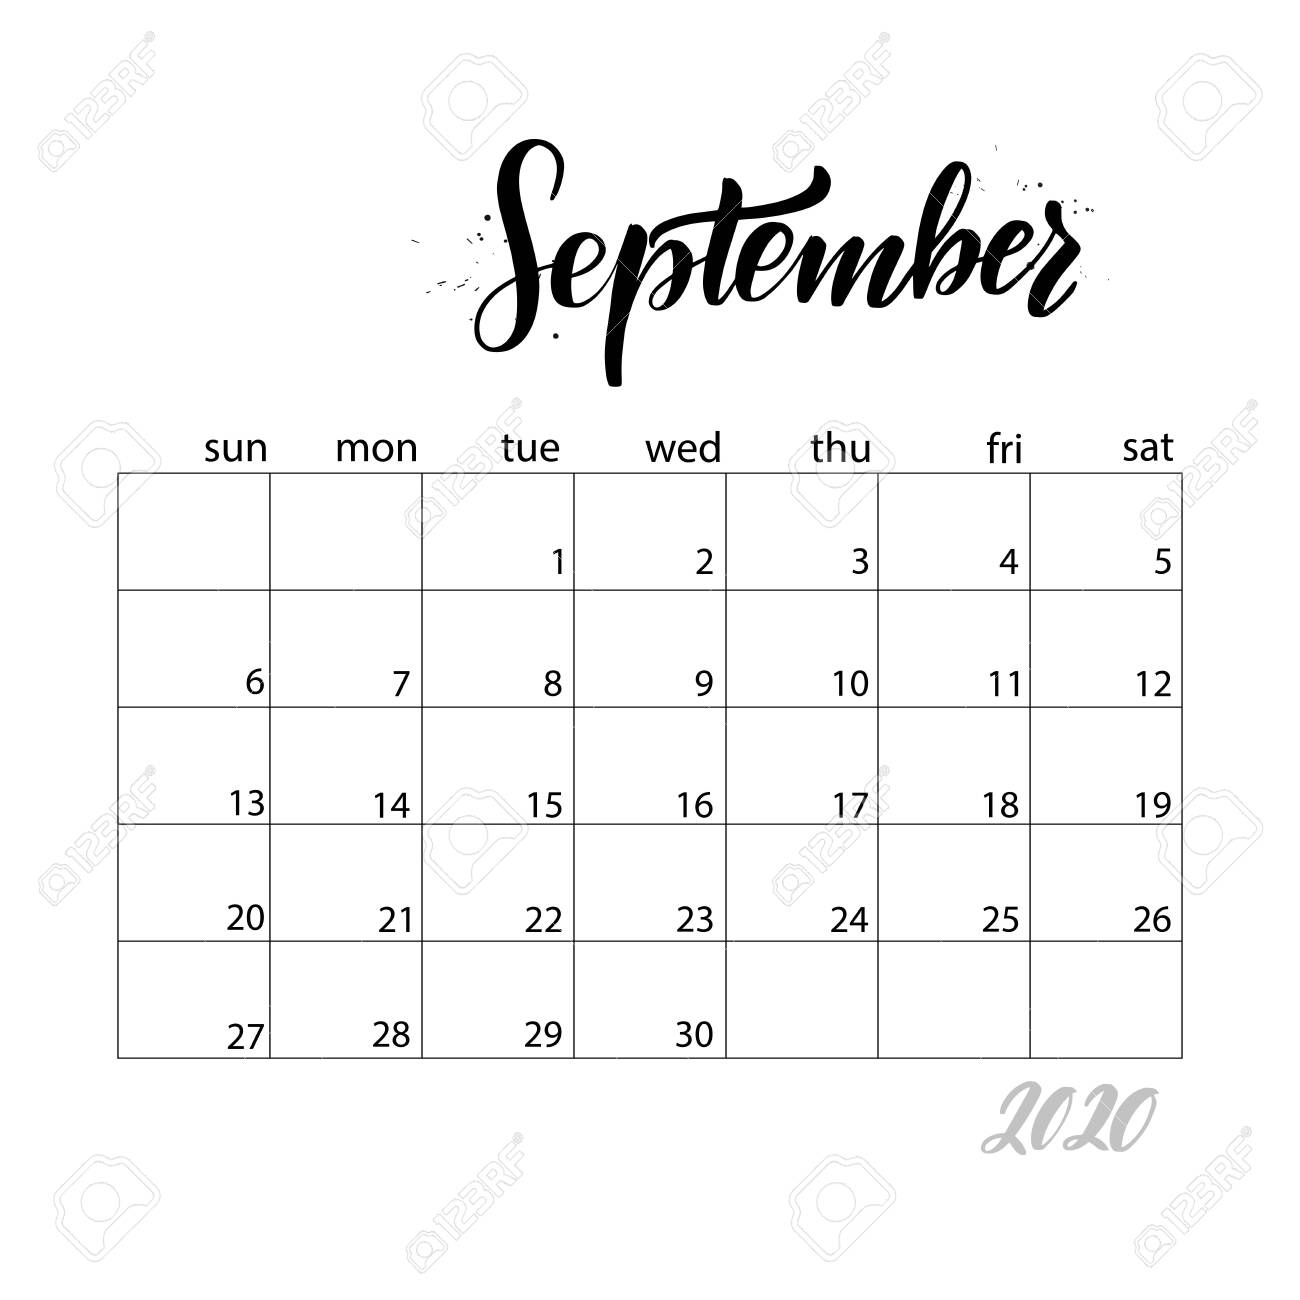 September. Monthly Calendar For 2020 Year. Handwritten Modern..